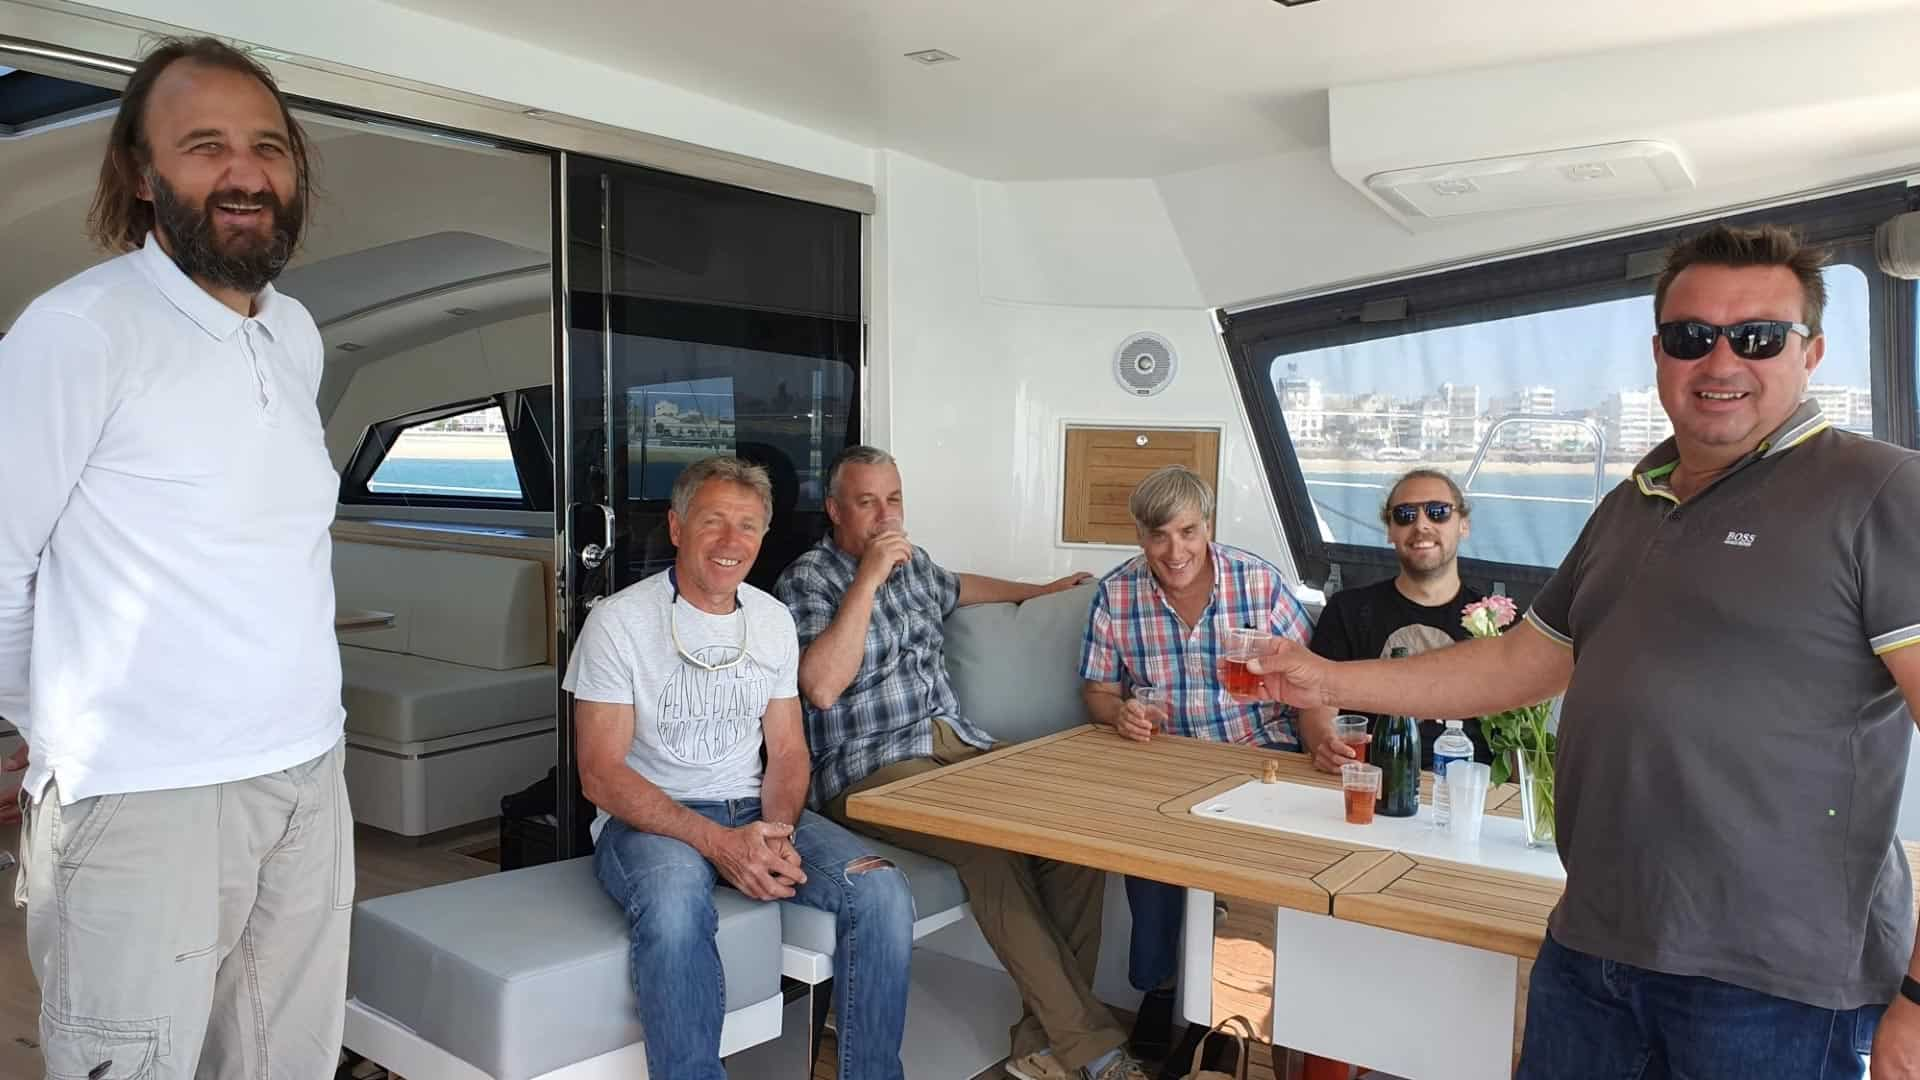 What's a new yacht without a champagne toast!